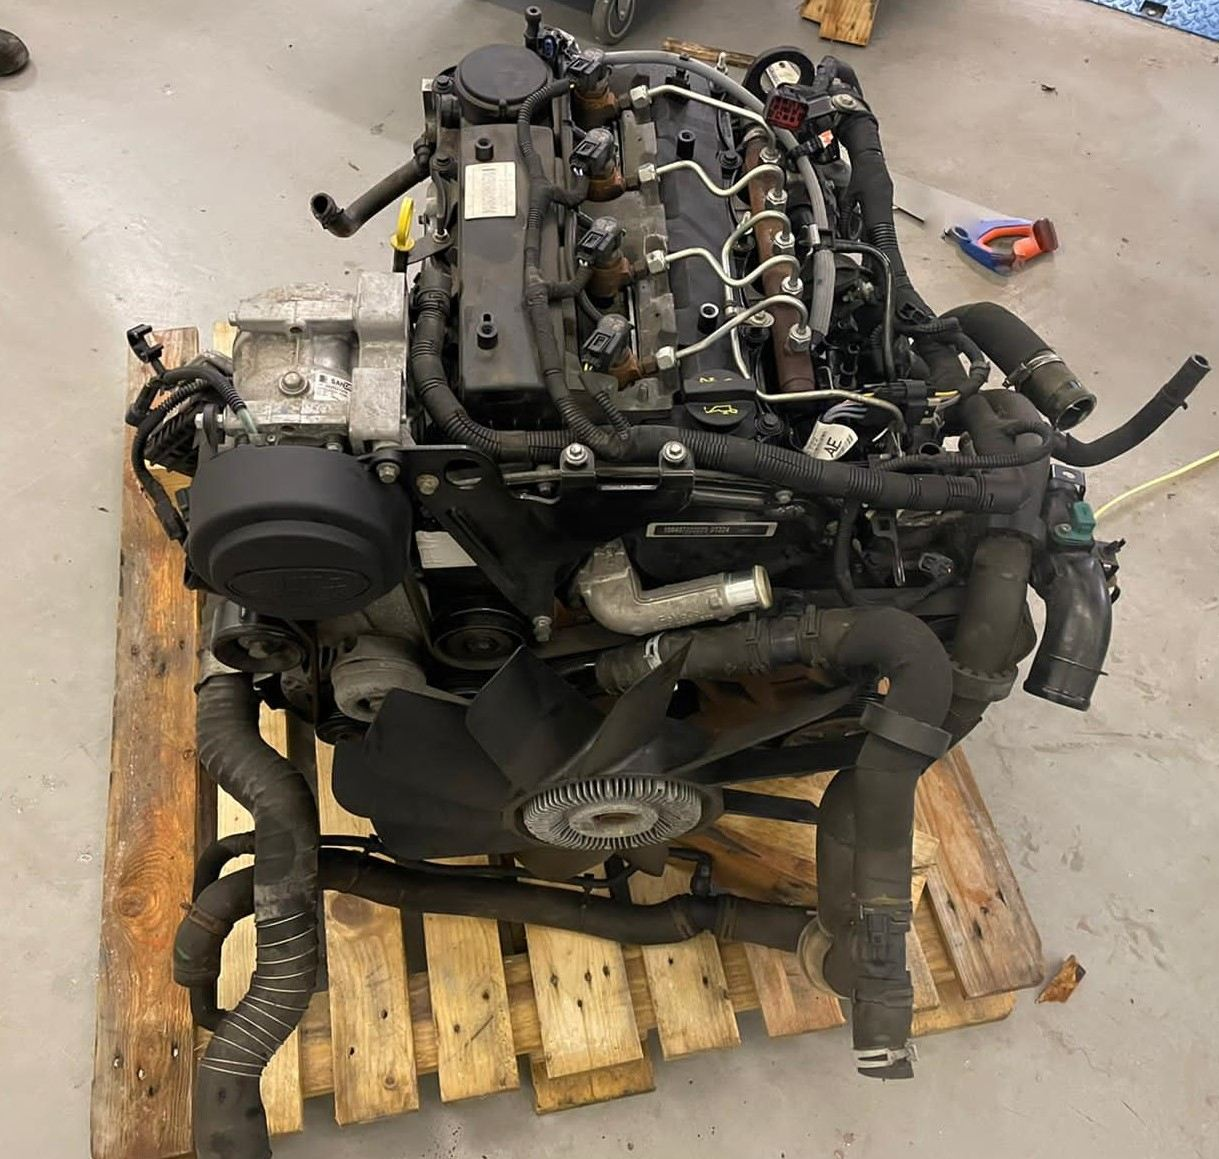 2013 2.2 TDCI COMPLETE ENGINE 45,000 MILES's featured image